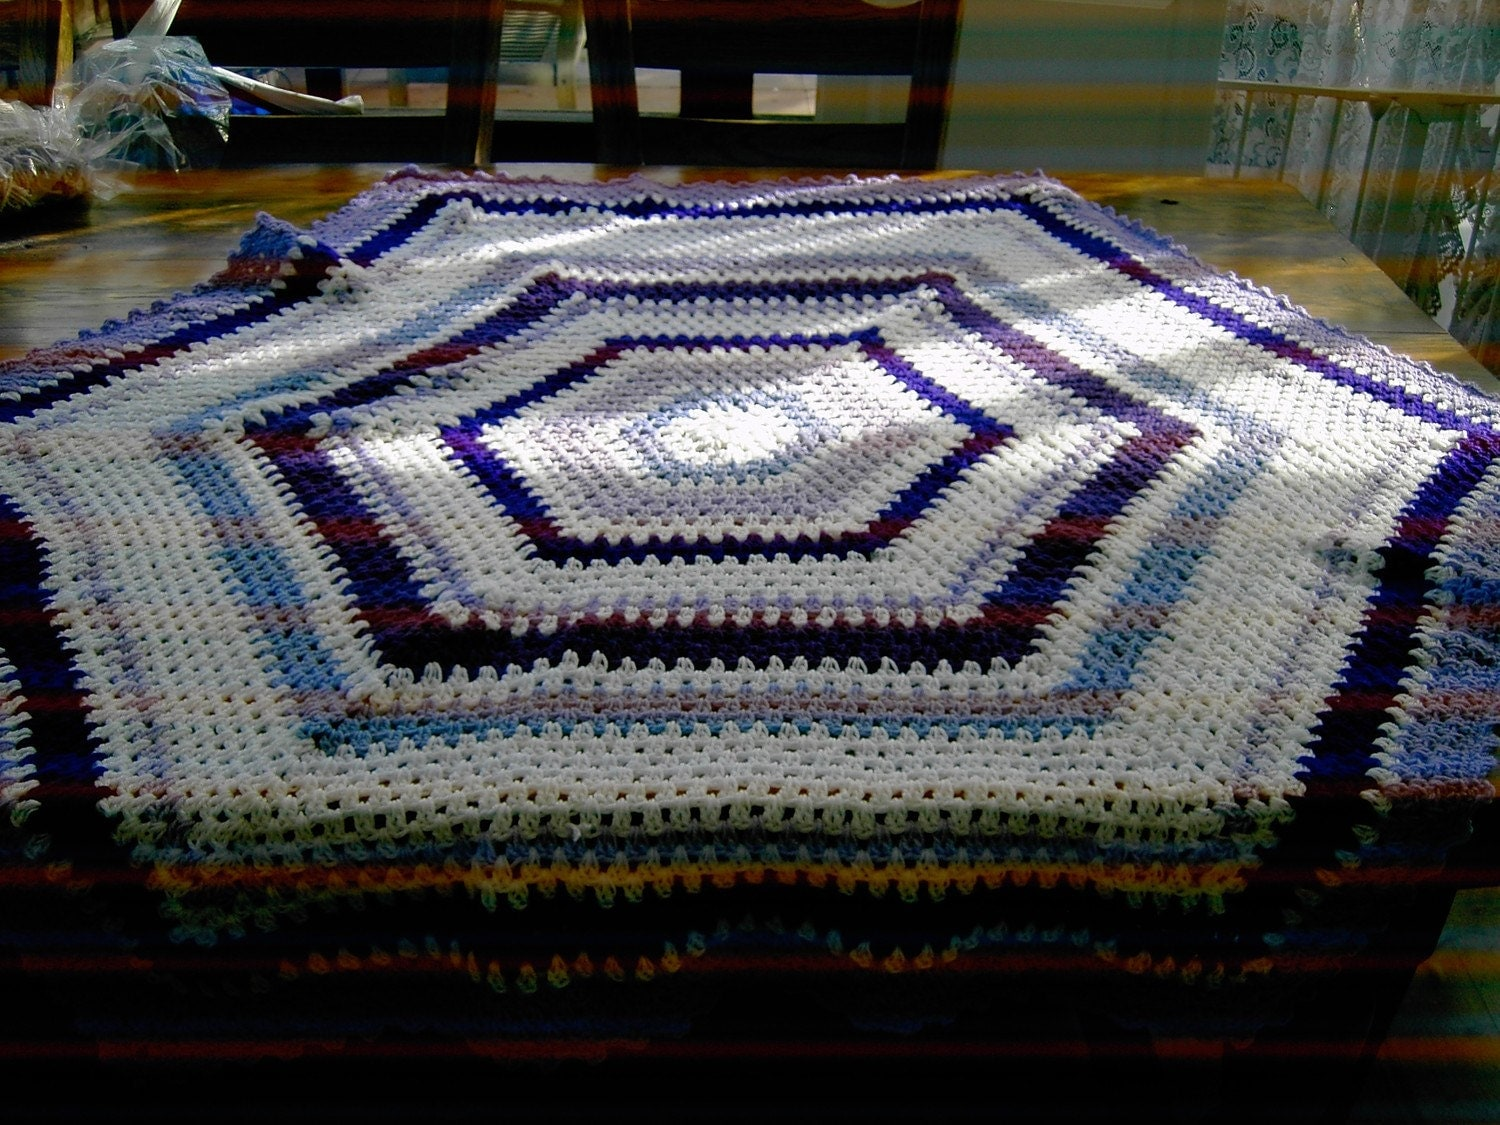 Crochet Blanket - Large Hexigan style blanke with purple, mauve, lavender and white  ID No 67